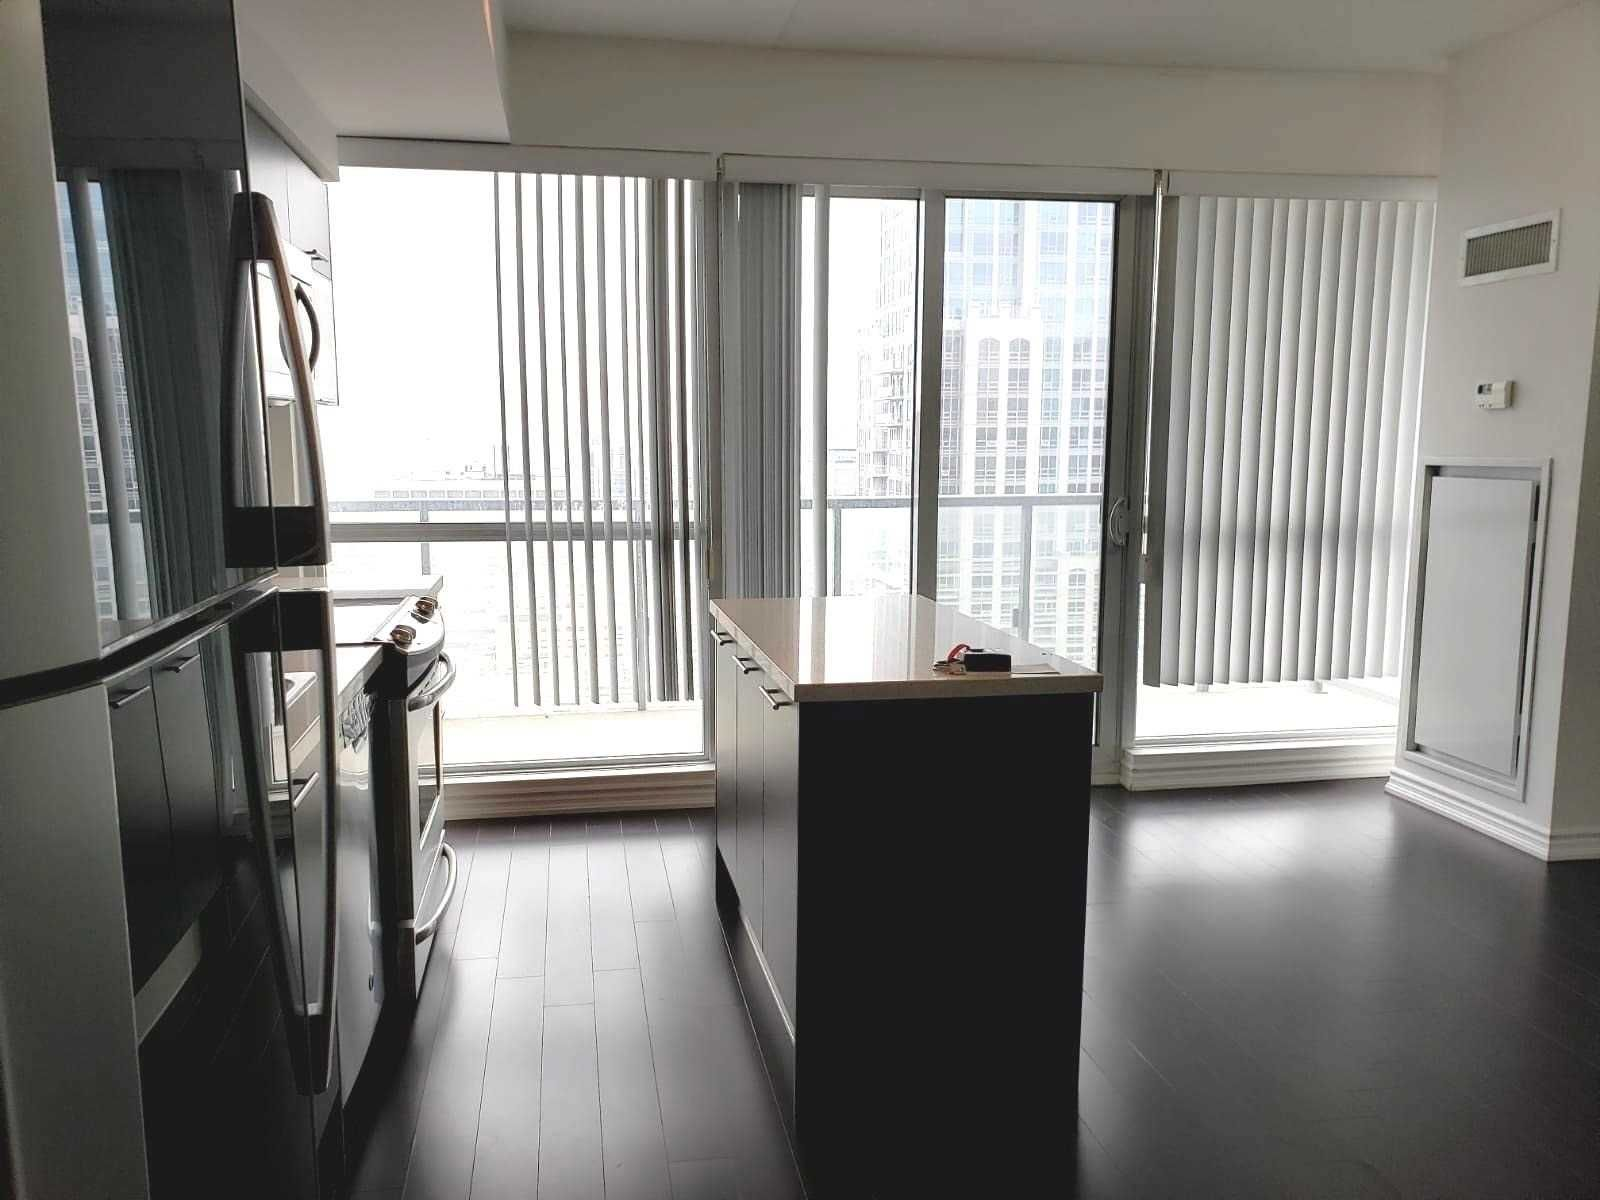 386 Yonge St, unit 3314 for rent in Toronto - image #2